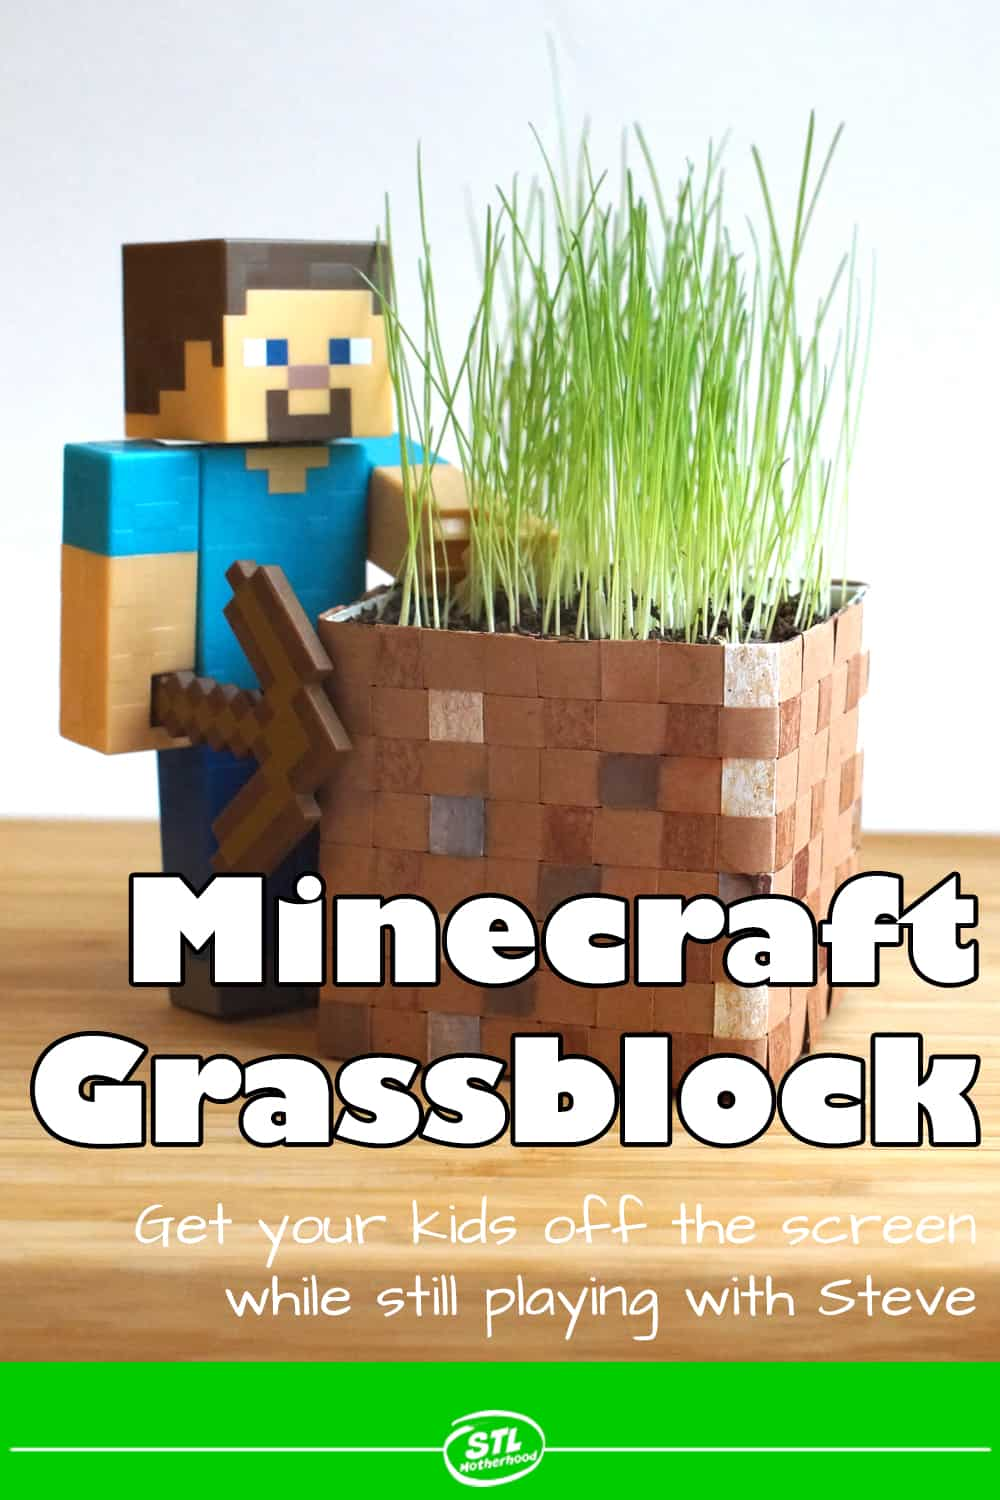 Minecraft Steve action figure with real grass growing from a handmade block